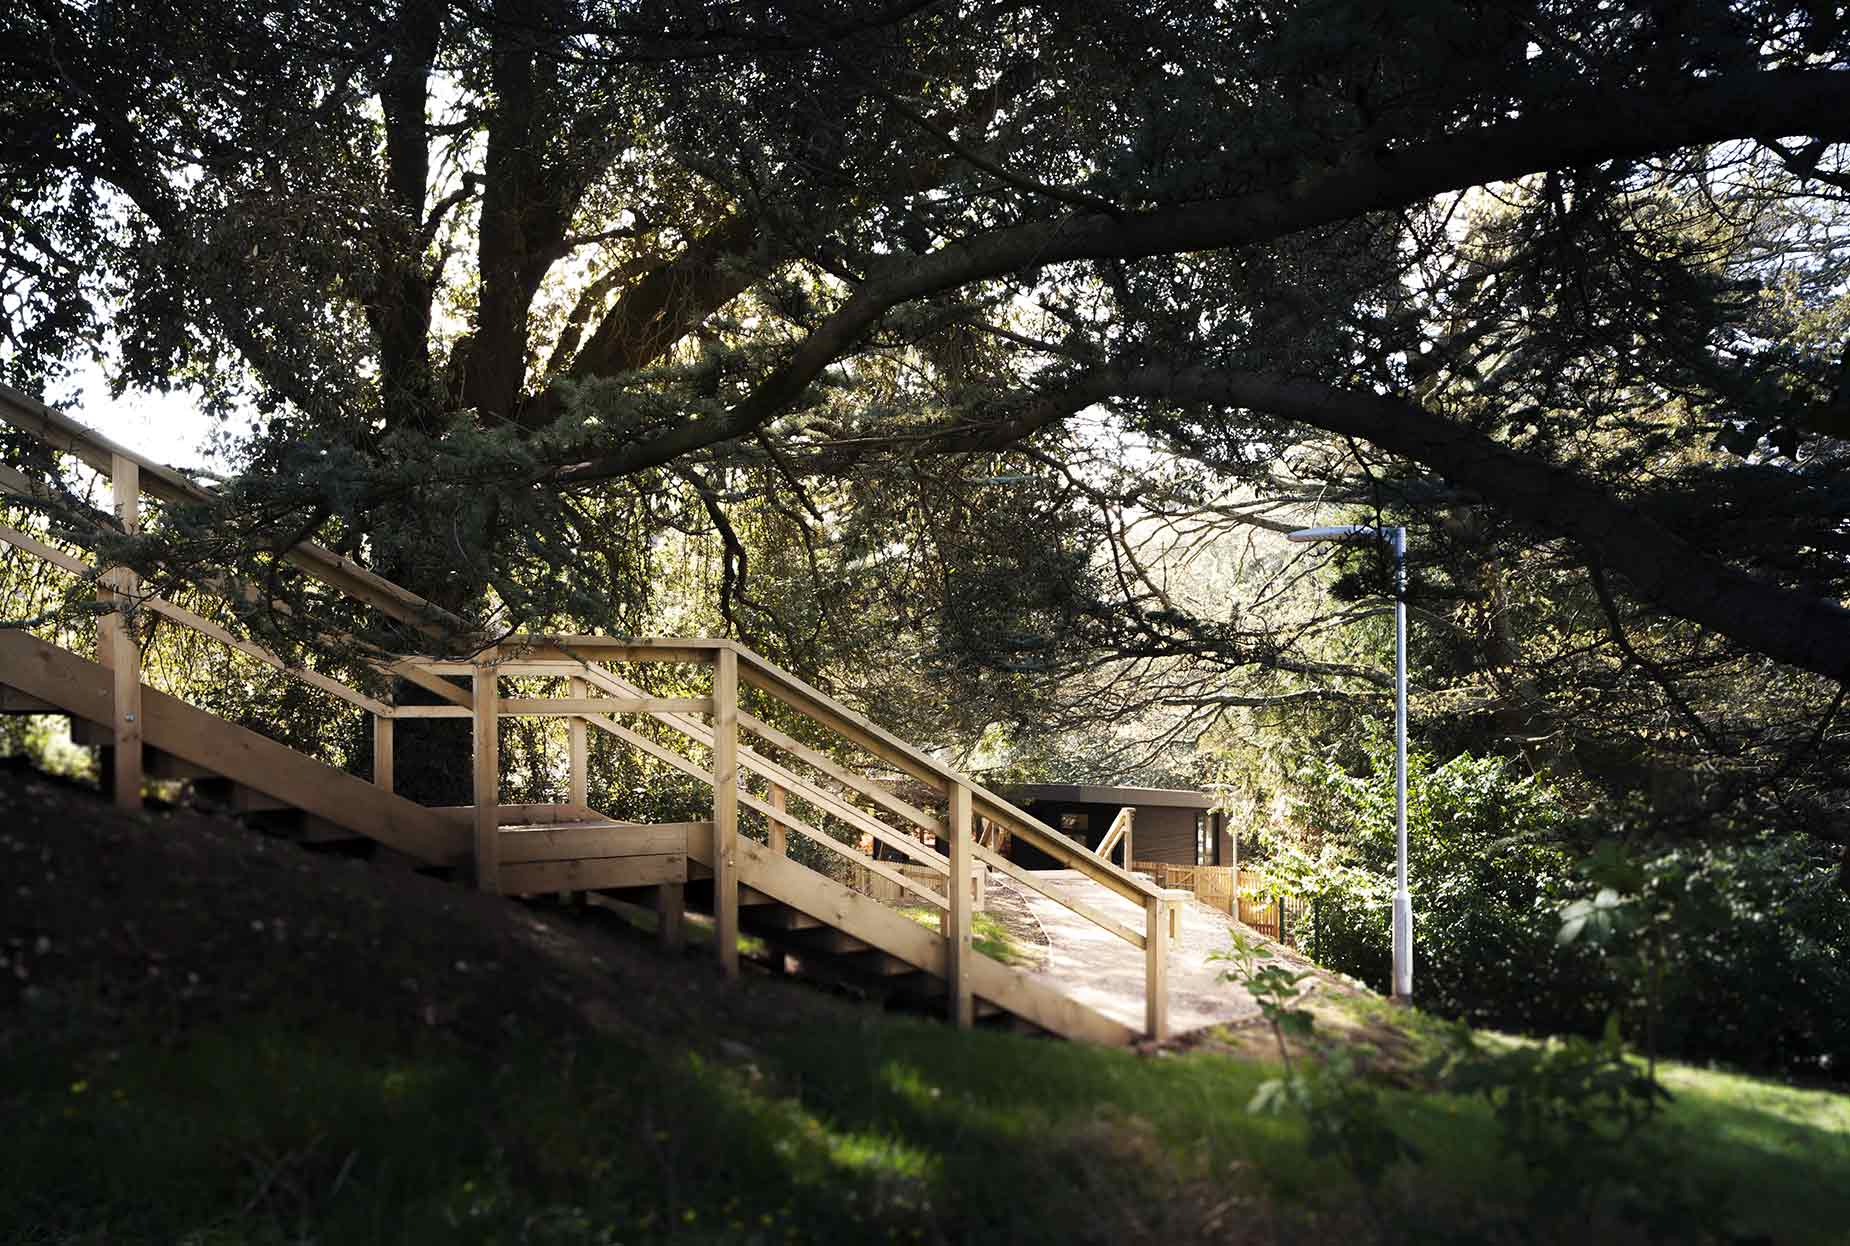 Wooden steps underneath large trees